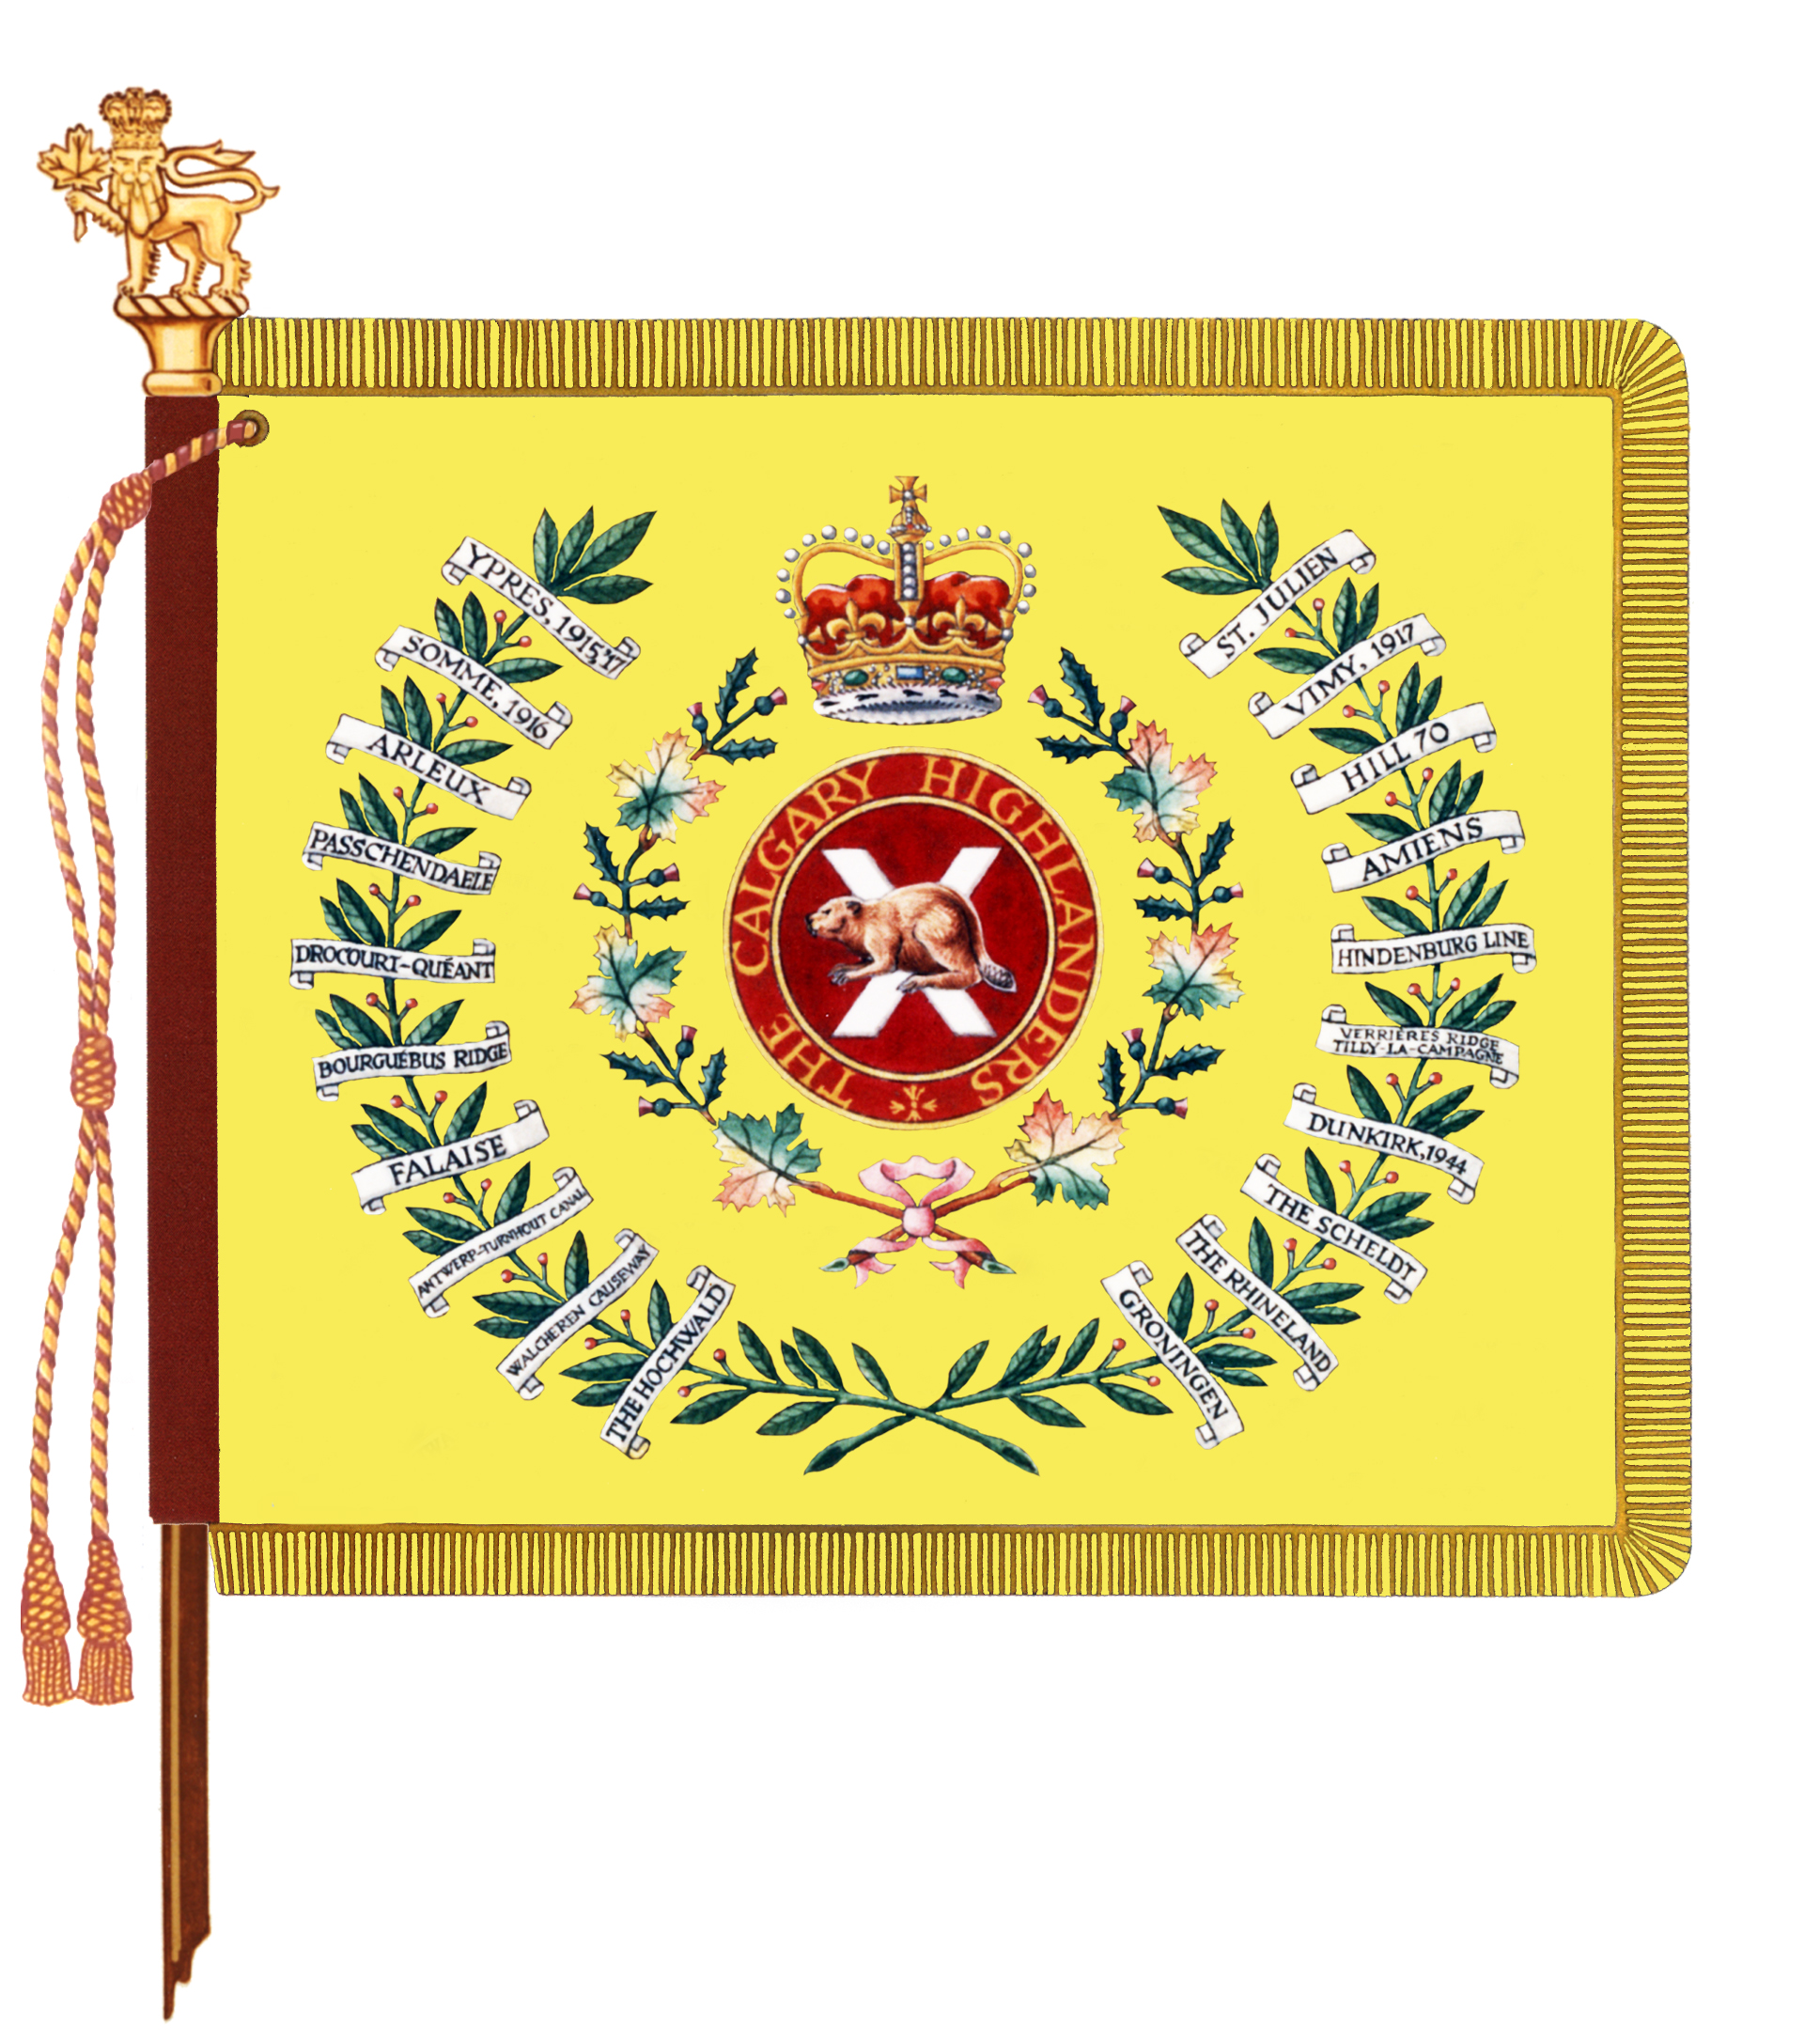 The Calgary Highlanders